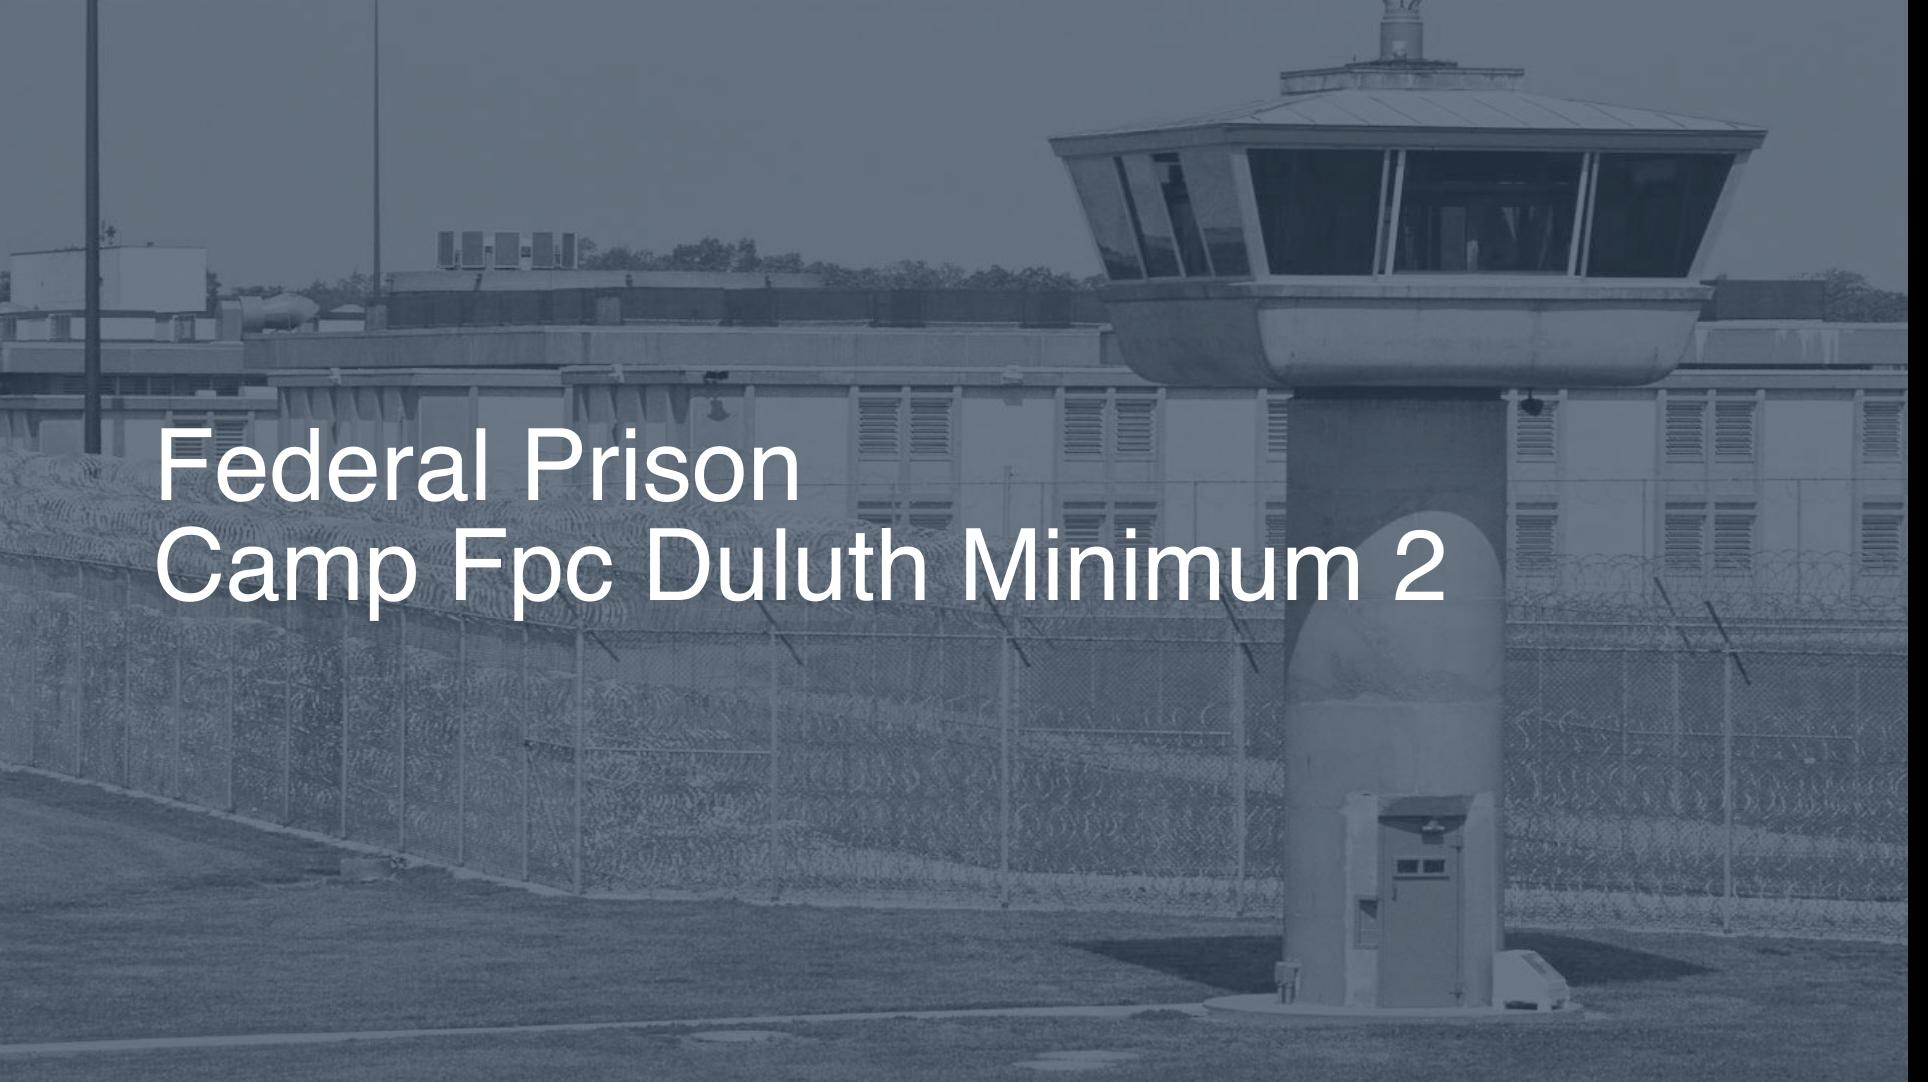 Federal Prison Camp (FPC) - Duluth Minimum correctional facility picture